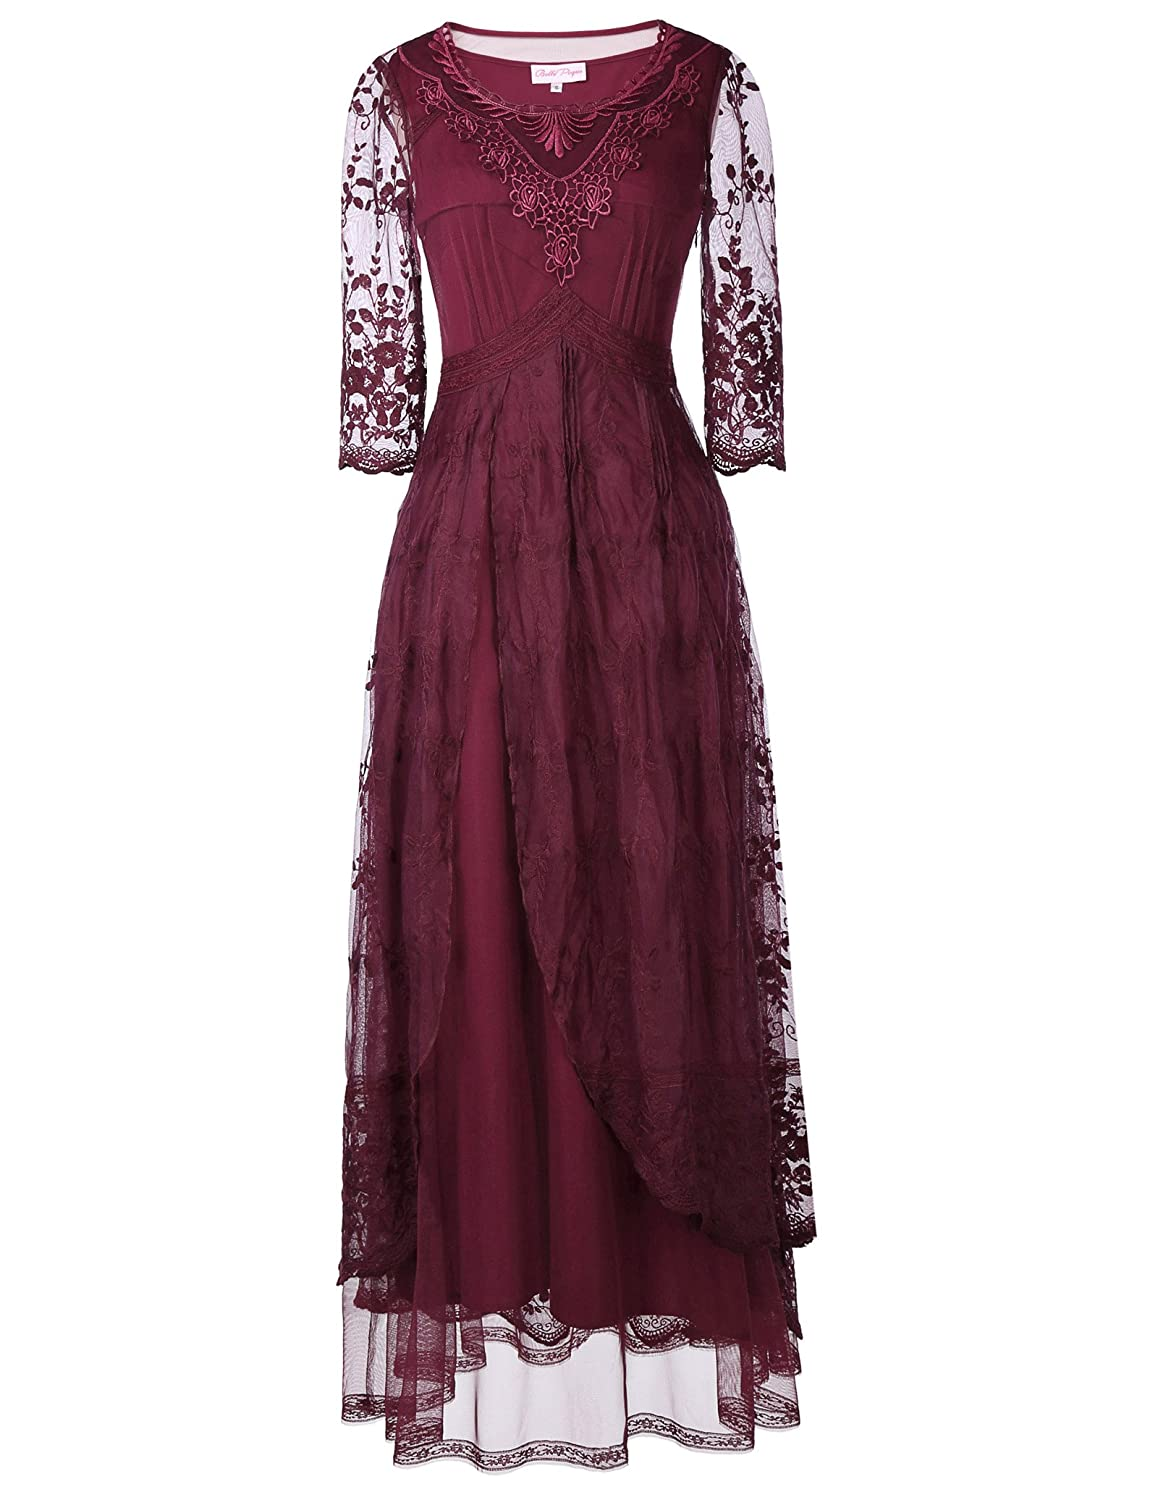 Edwardian Ladies Clothing – 1900, 1910s, Titanic Era Belle Poque Steampunk Victorian Titanic Lace Maxi Dress Tea Party Gown Antique Dress $43.99 AT vintagedancer.com